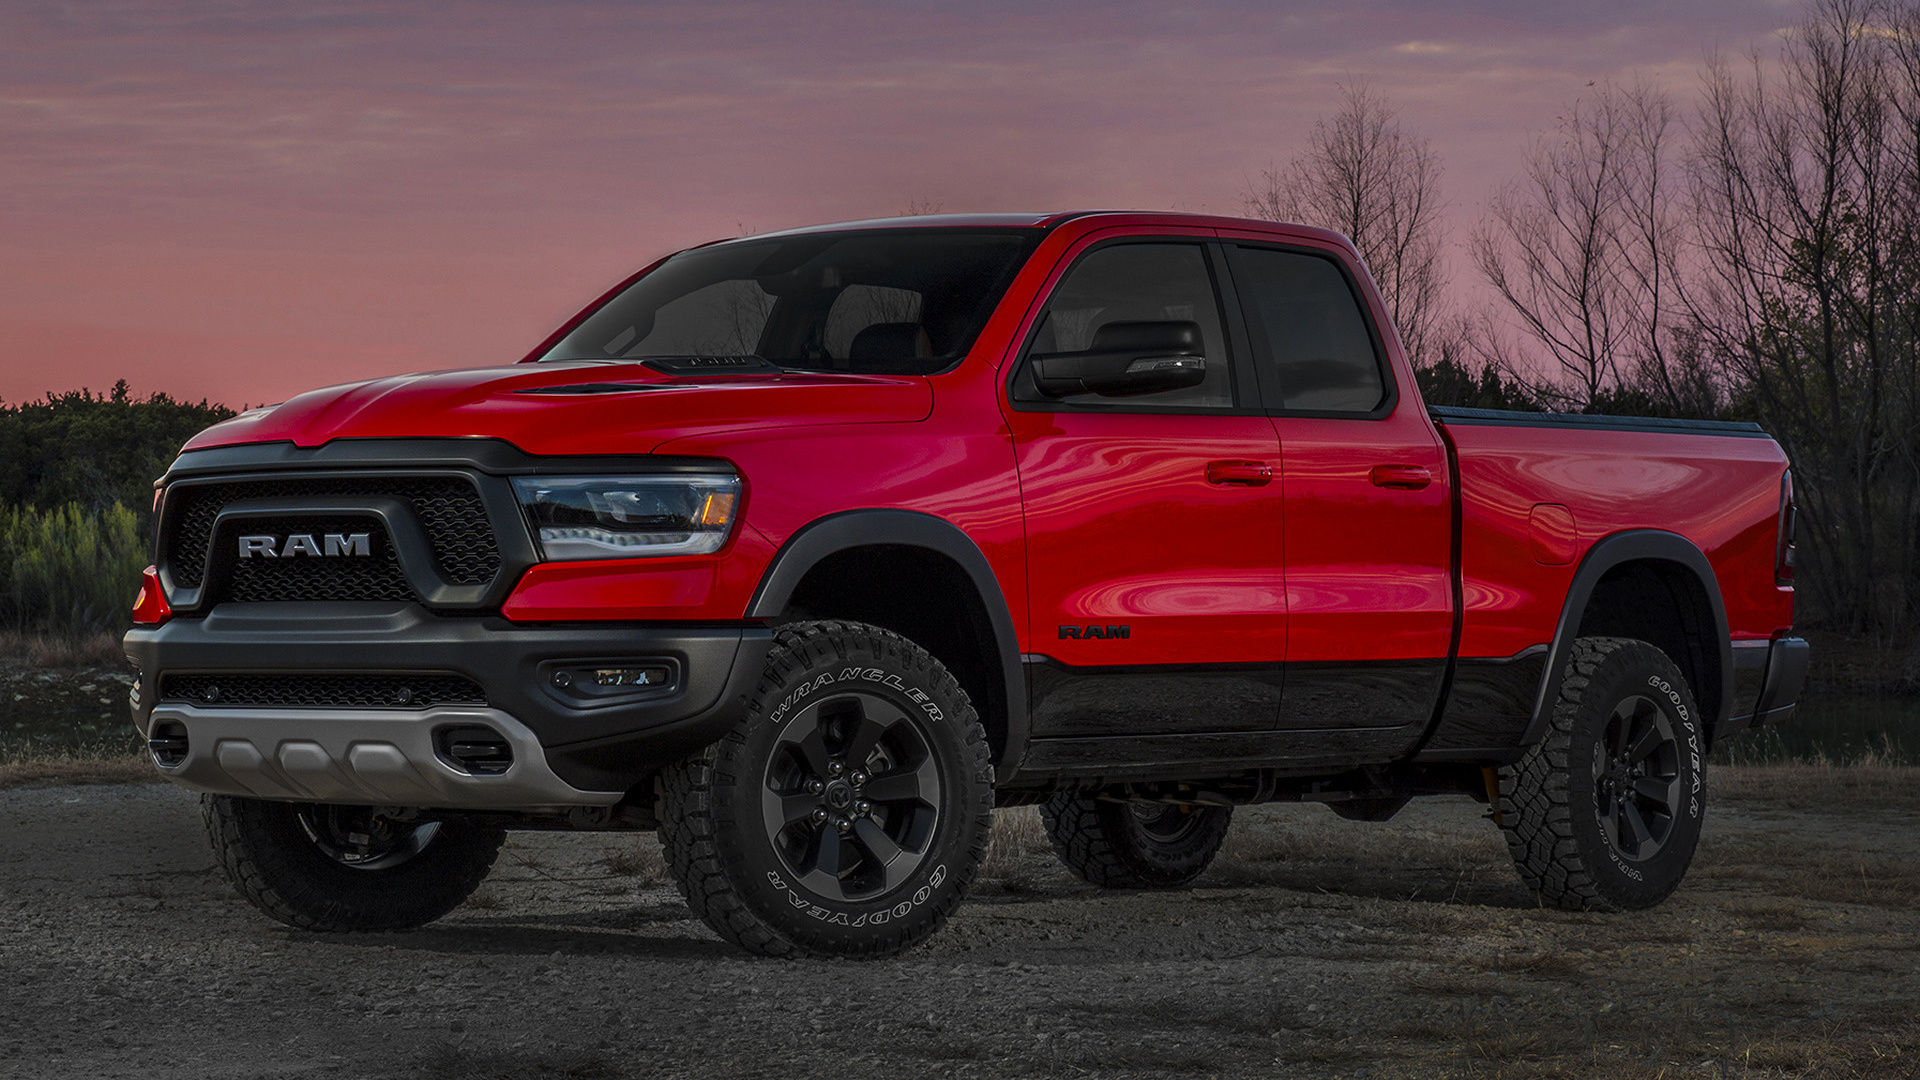 2019 Ram 1500 Rebel Quad Cab - Wallpapers and HD Images ...